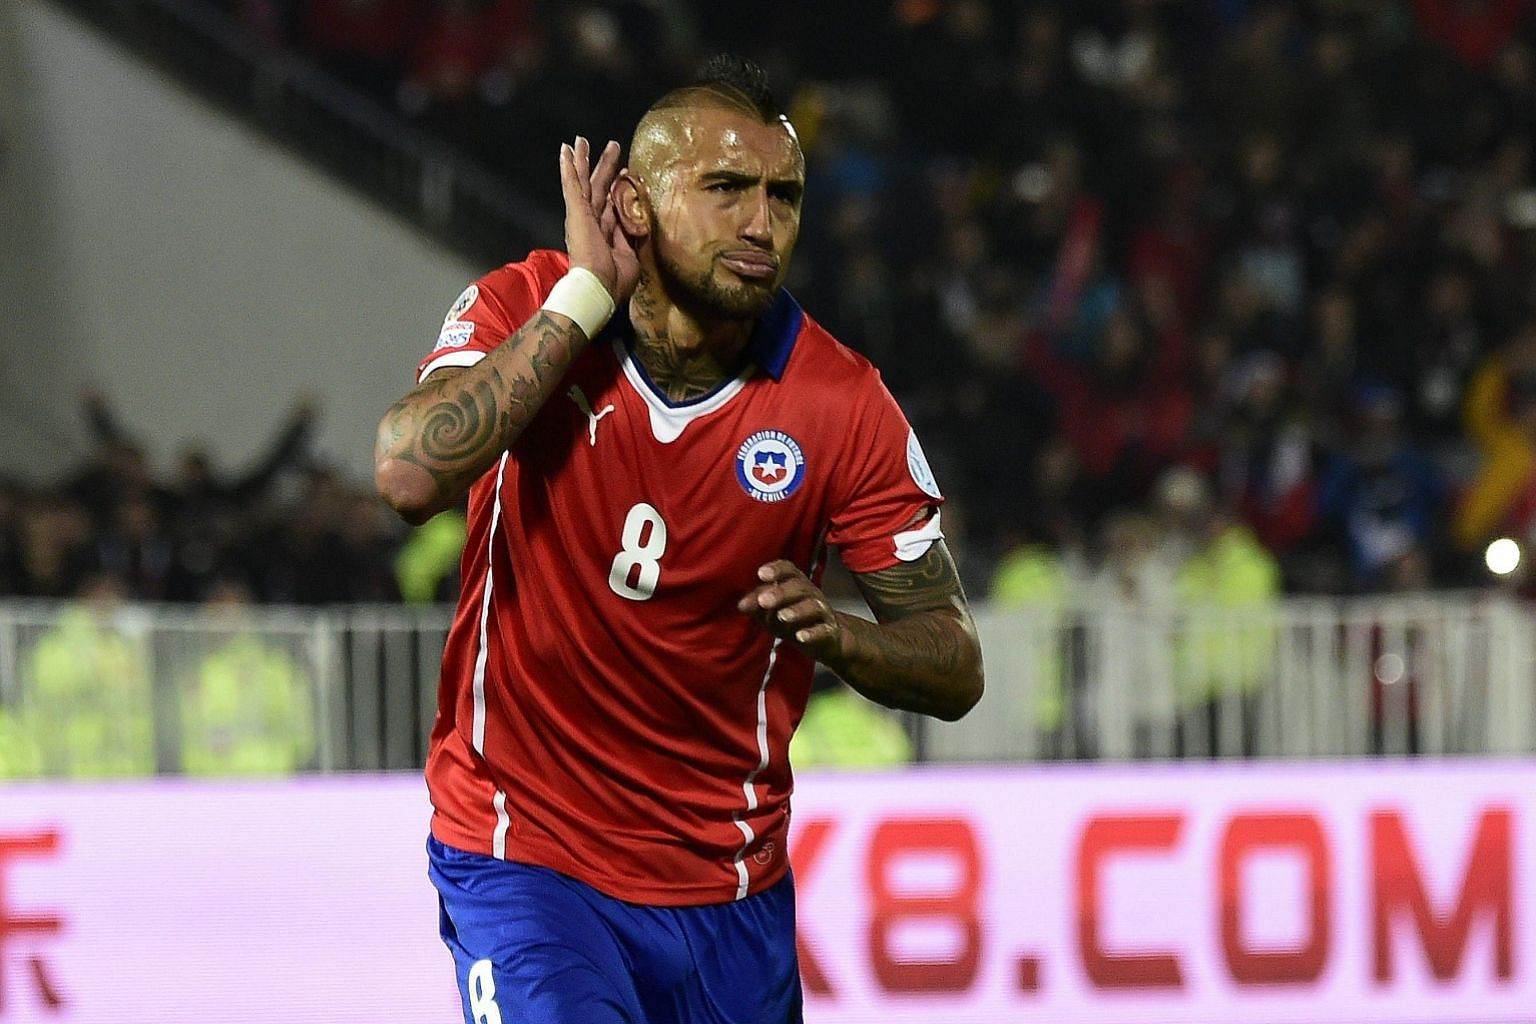 Chilean Arturo Vidal is expected to be the long-term replacement at Bayern for the injury-plagued Frenchman Franck Ribery.